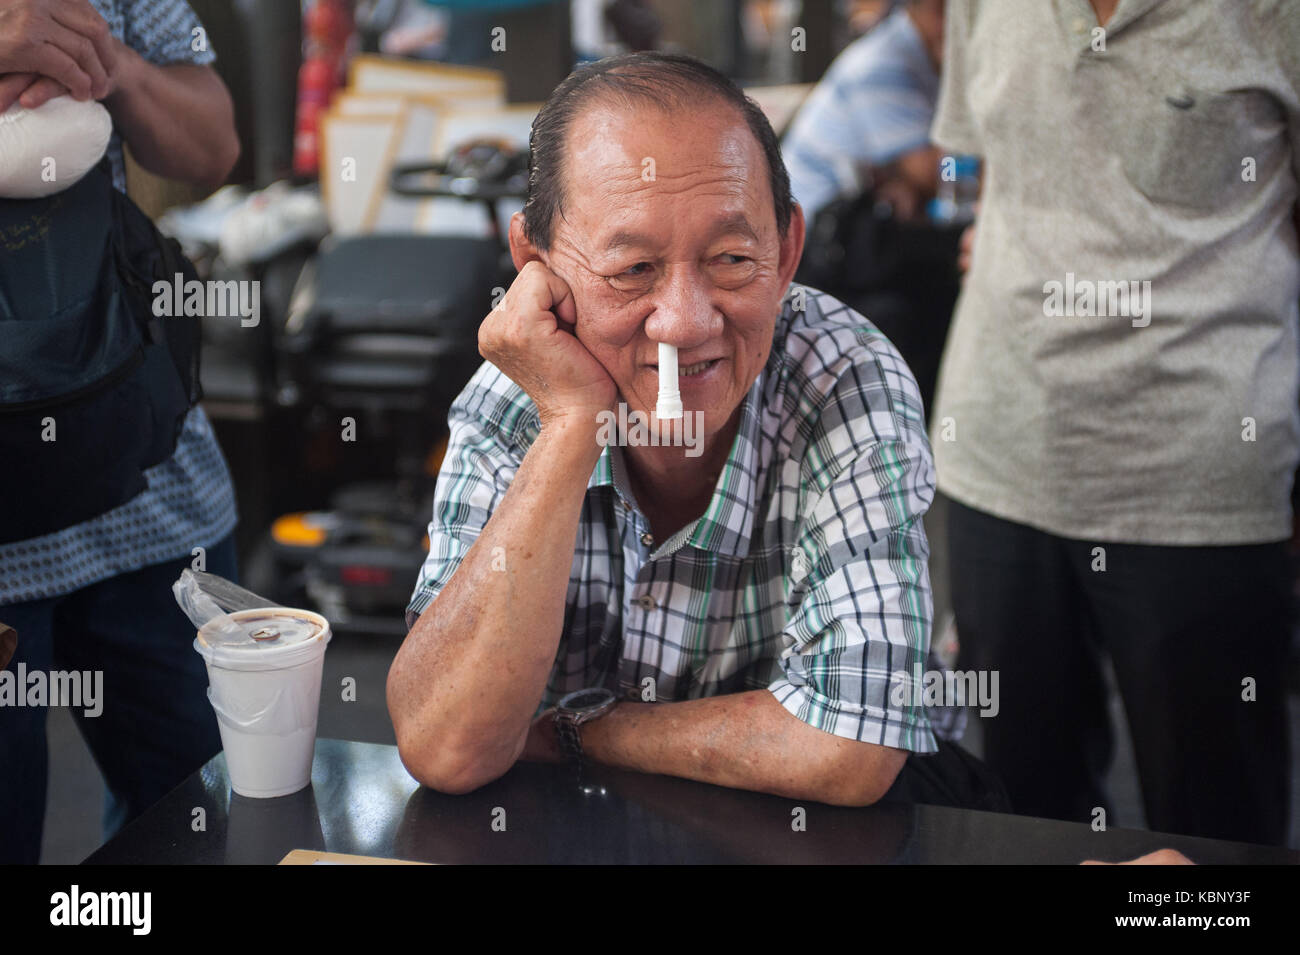 29.09.2017, Singapore, Republic of Singapore, Asia - An elderly man with a blocked nose sits at a table at a public - Stock Image